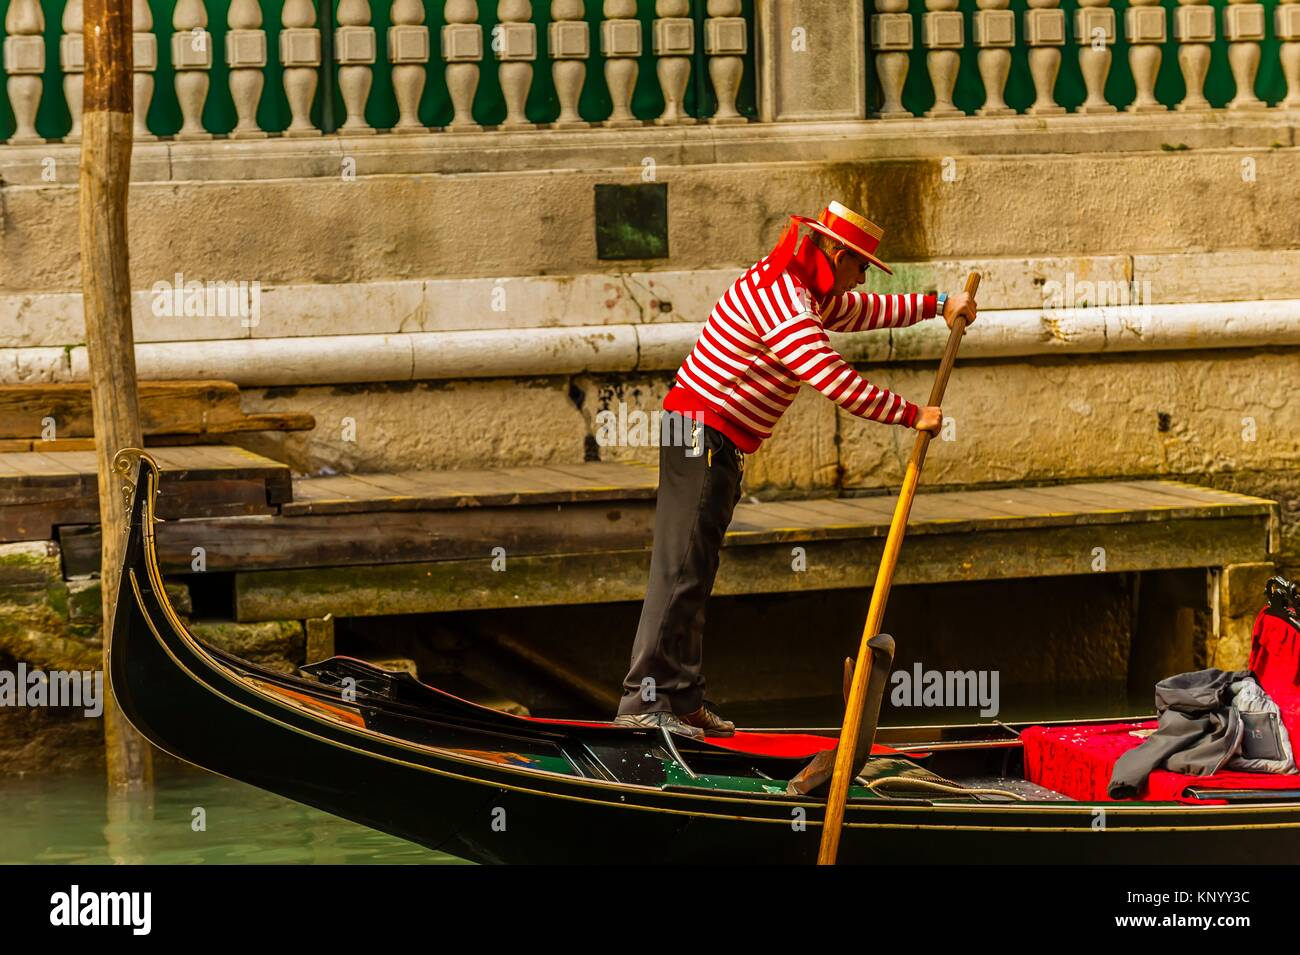 A gondolier rowing on a back canal, Venice, Italy. - Stock Image